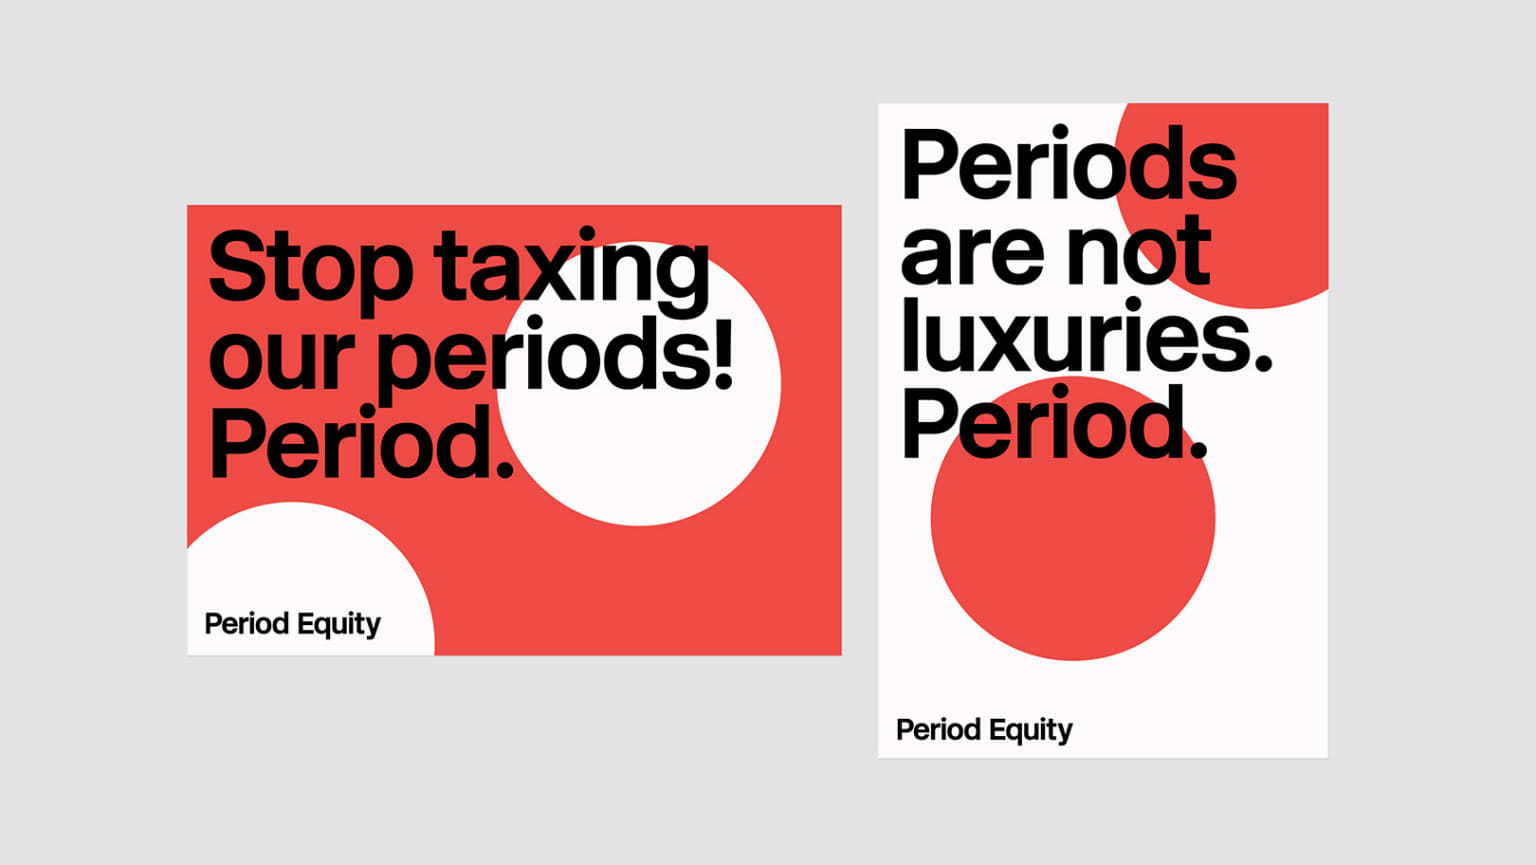 Period Equity